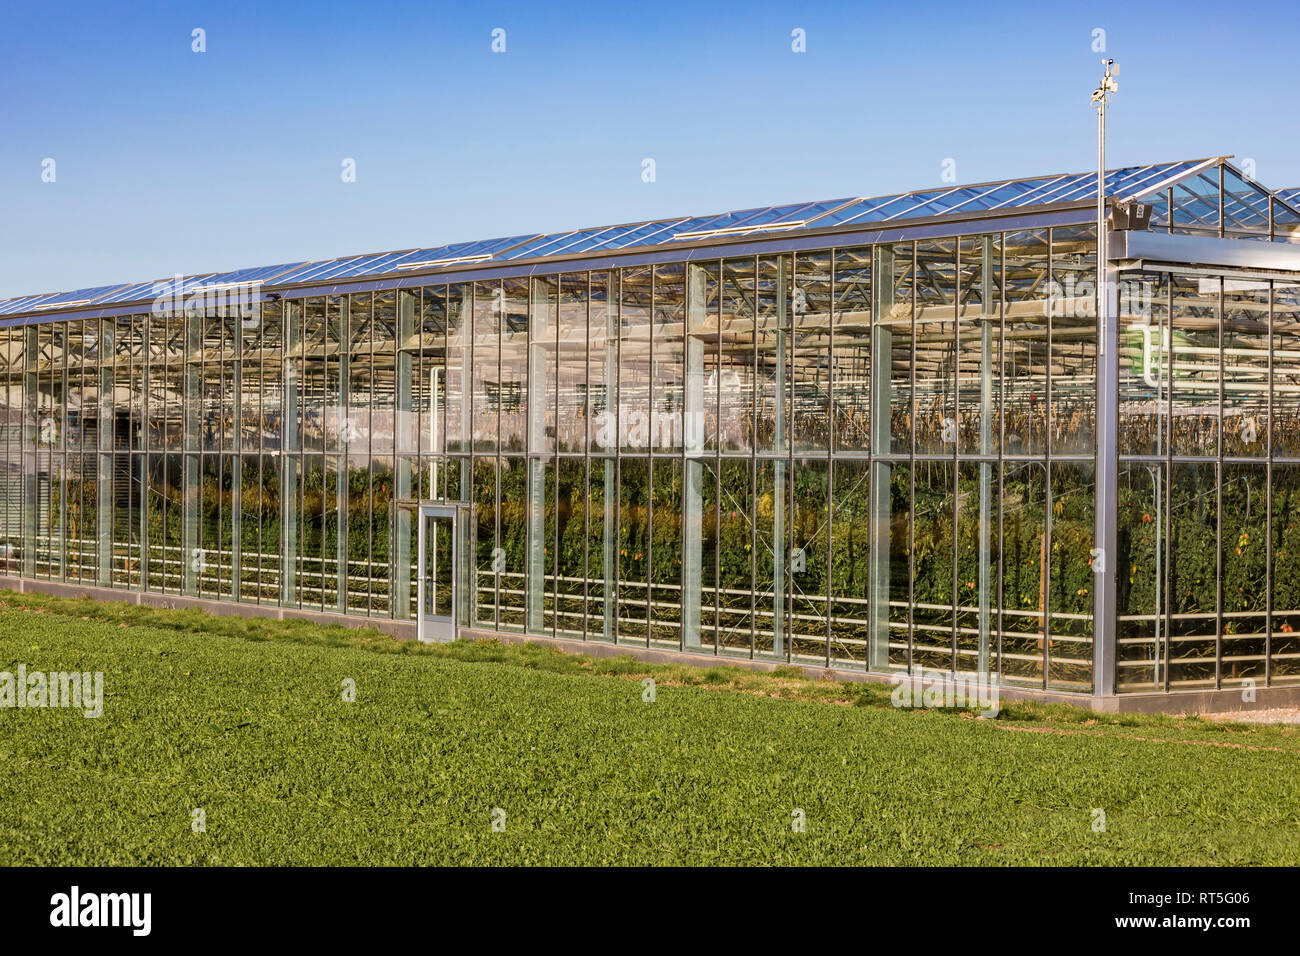 Cash Pool Fellbach Fellbach Germany Stock Photos Fellbach Germany Stock Images Alamy